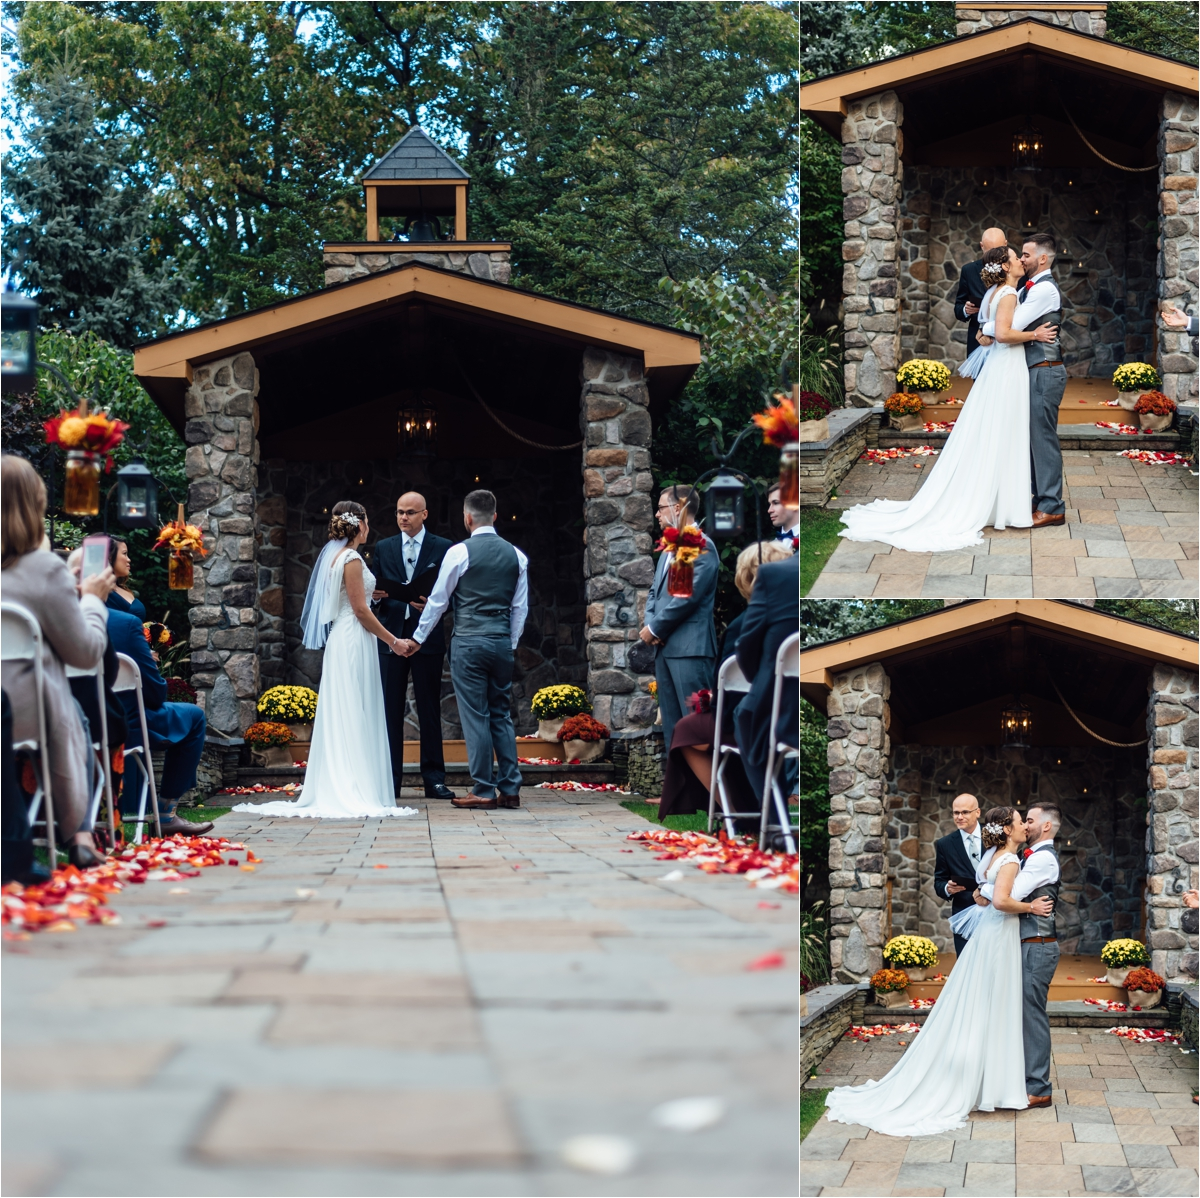 Sarah_&_Doug_Stroudsberg_Wedding_the_photo_farm_0033.jpg